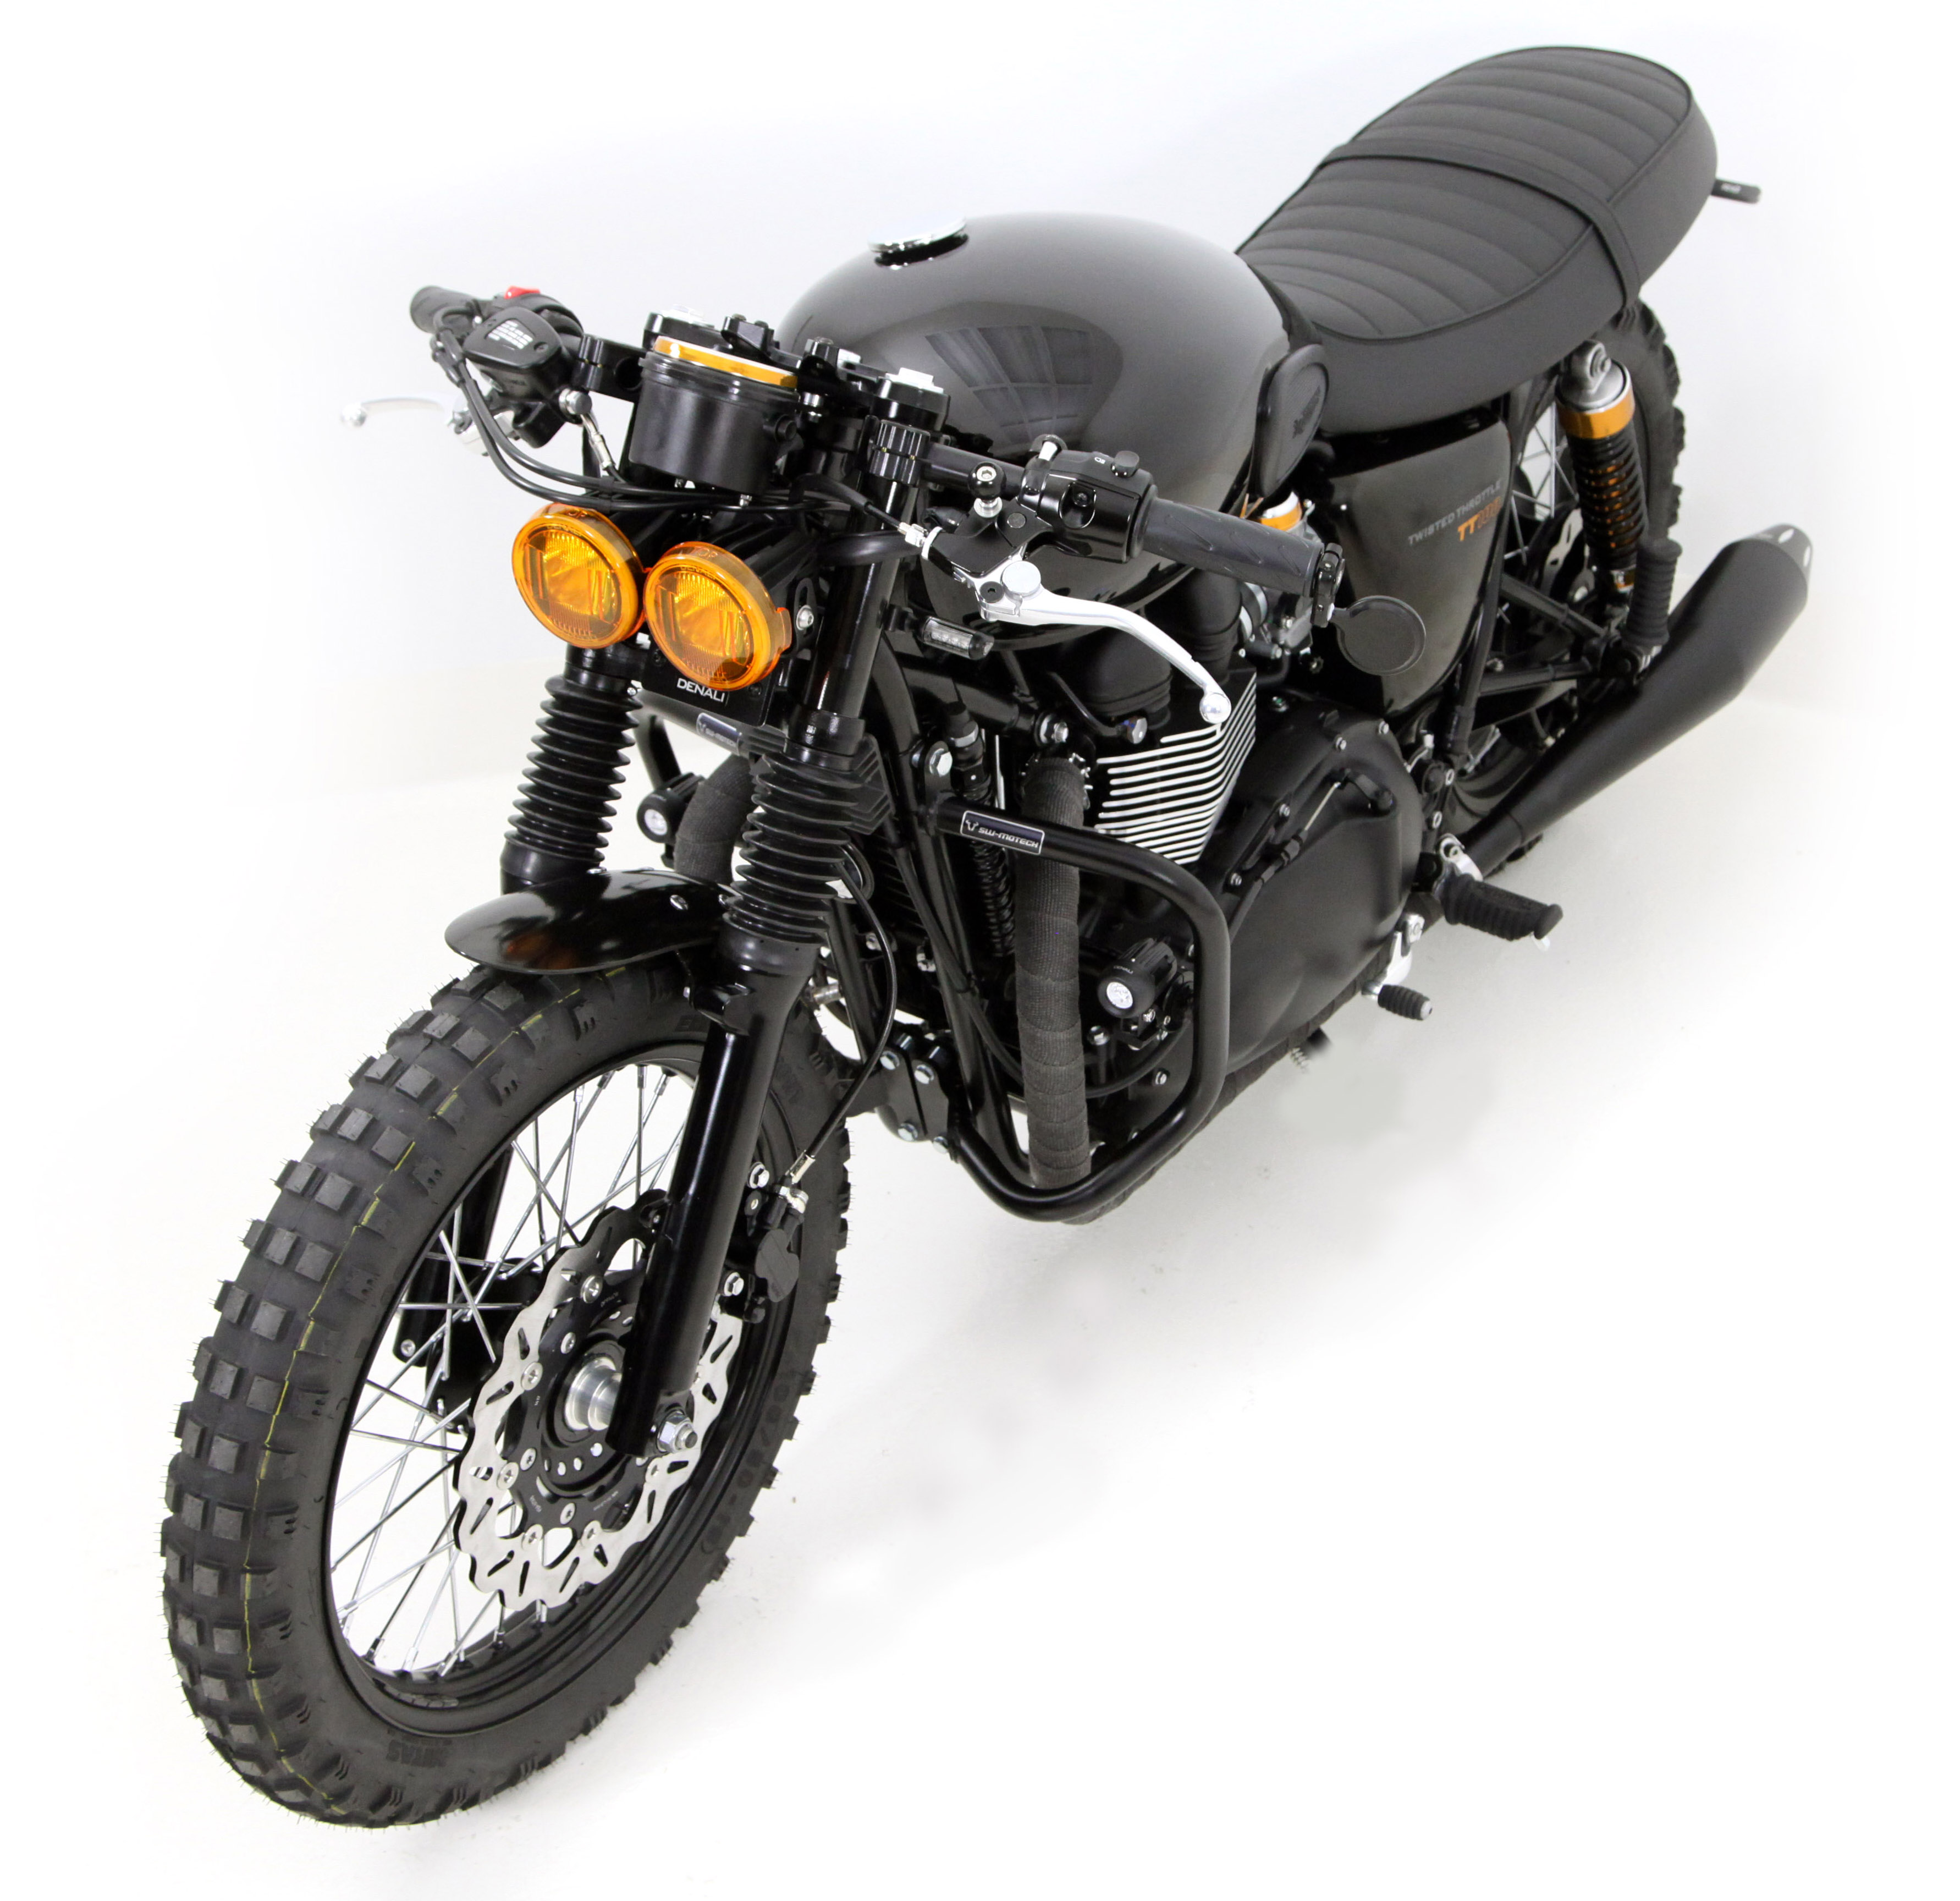 Twisted Throttle Triumph T100 Project Bike